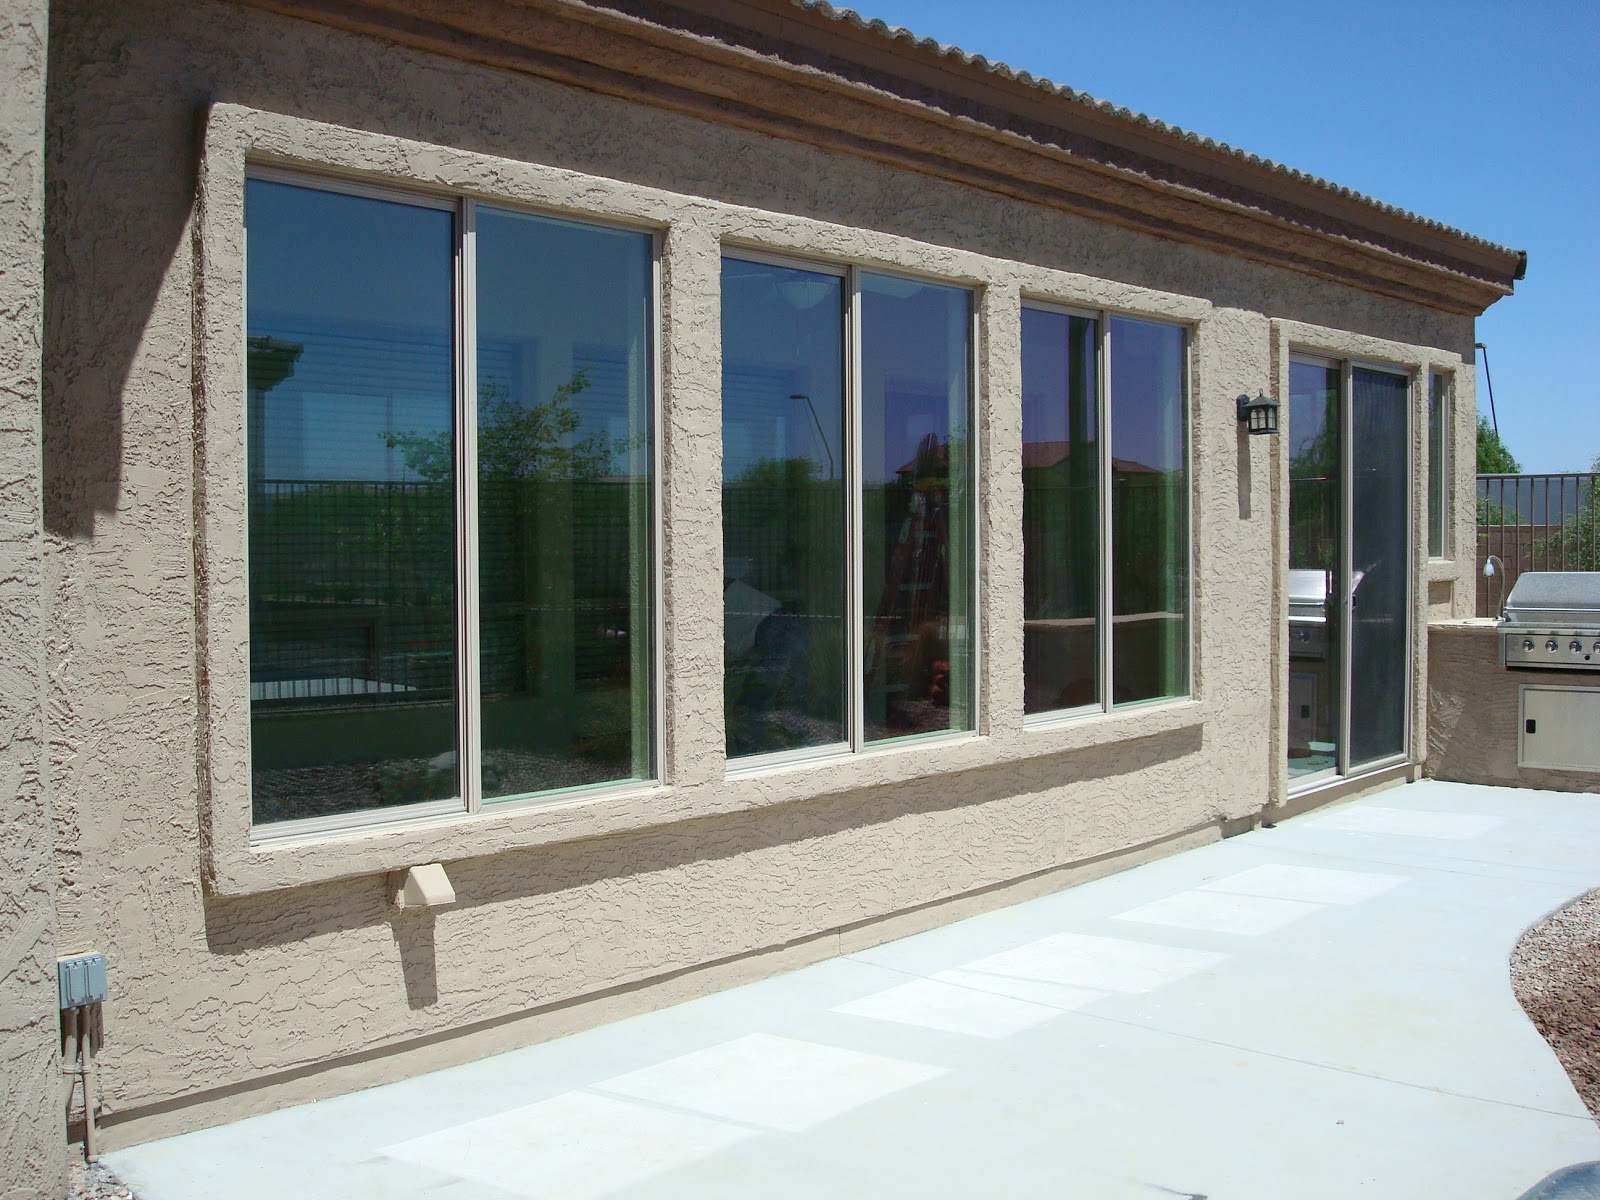 Hoa approval for modular sunroom arizona enclosures and for Modular sunroom